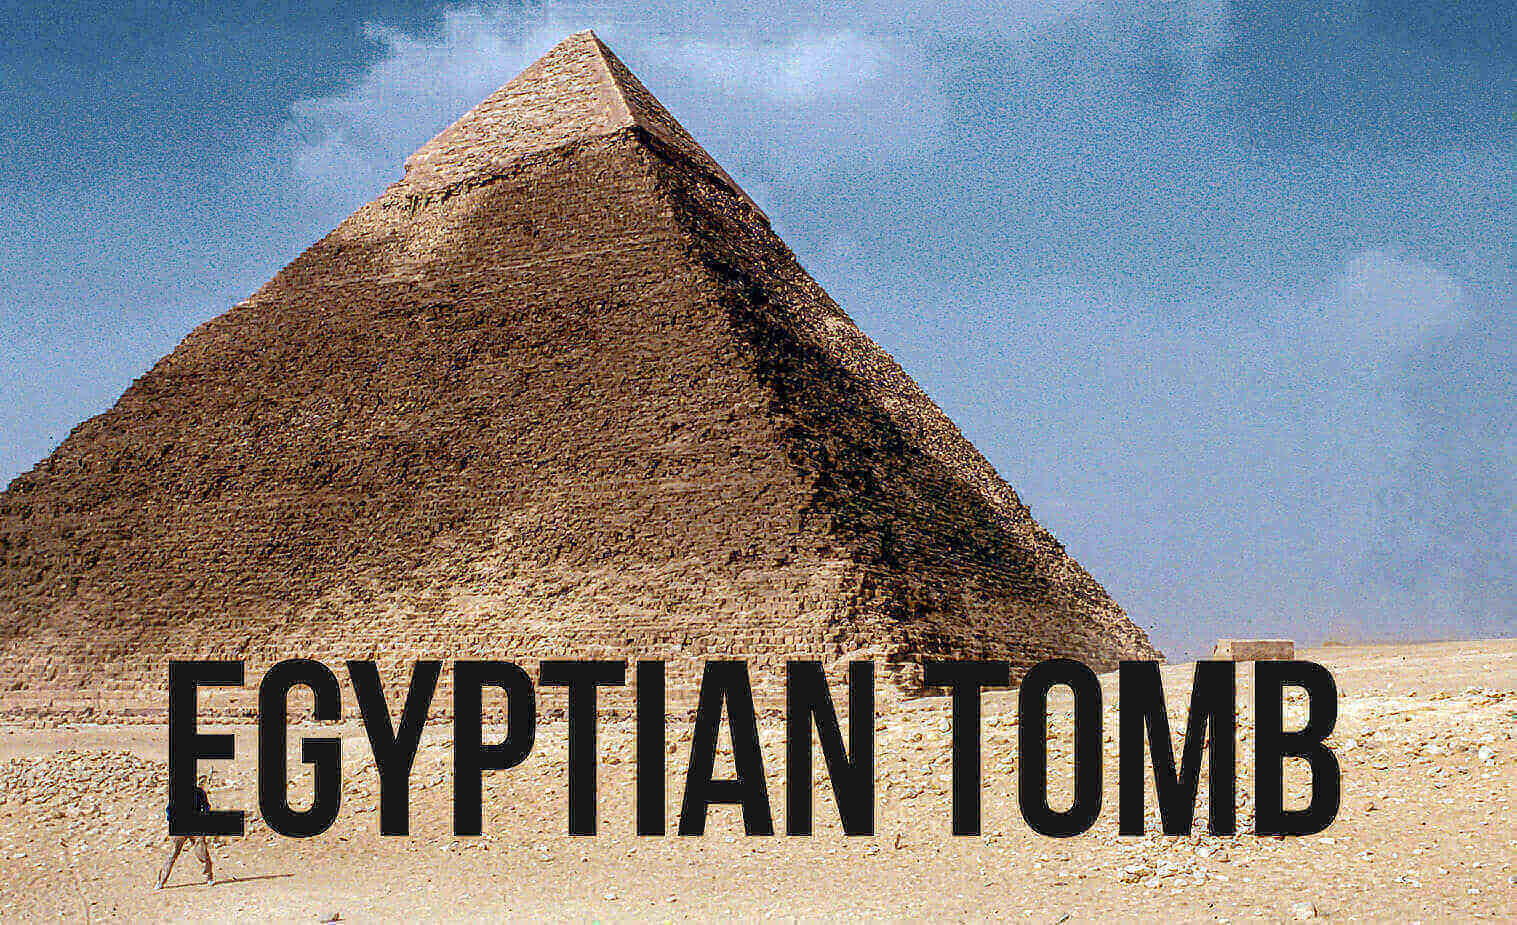 Locked: Murfreesboro | Room - Egyptian Tomb